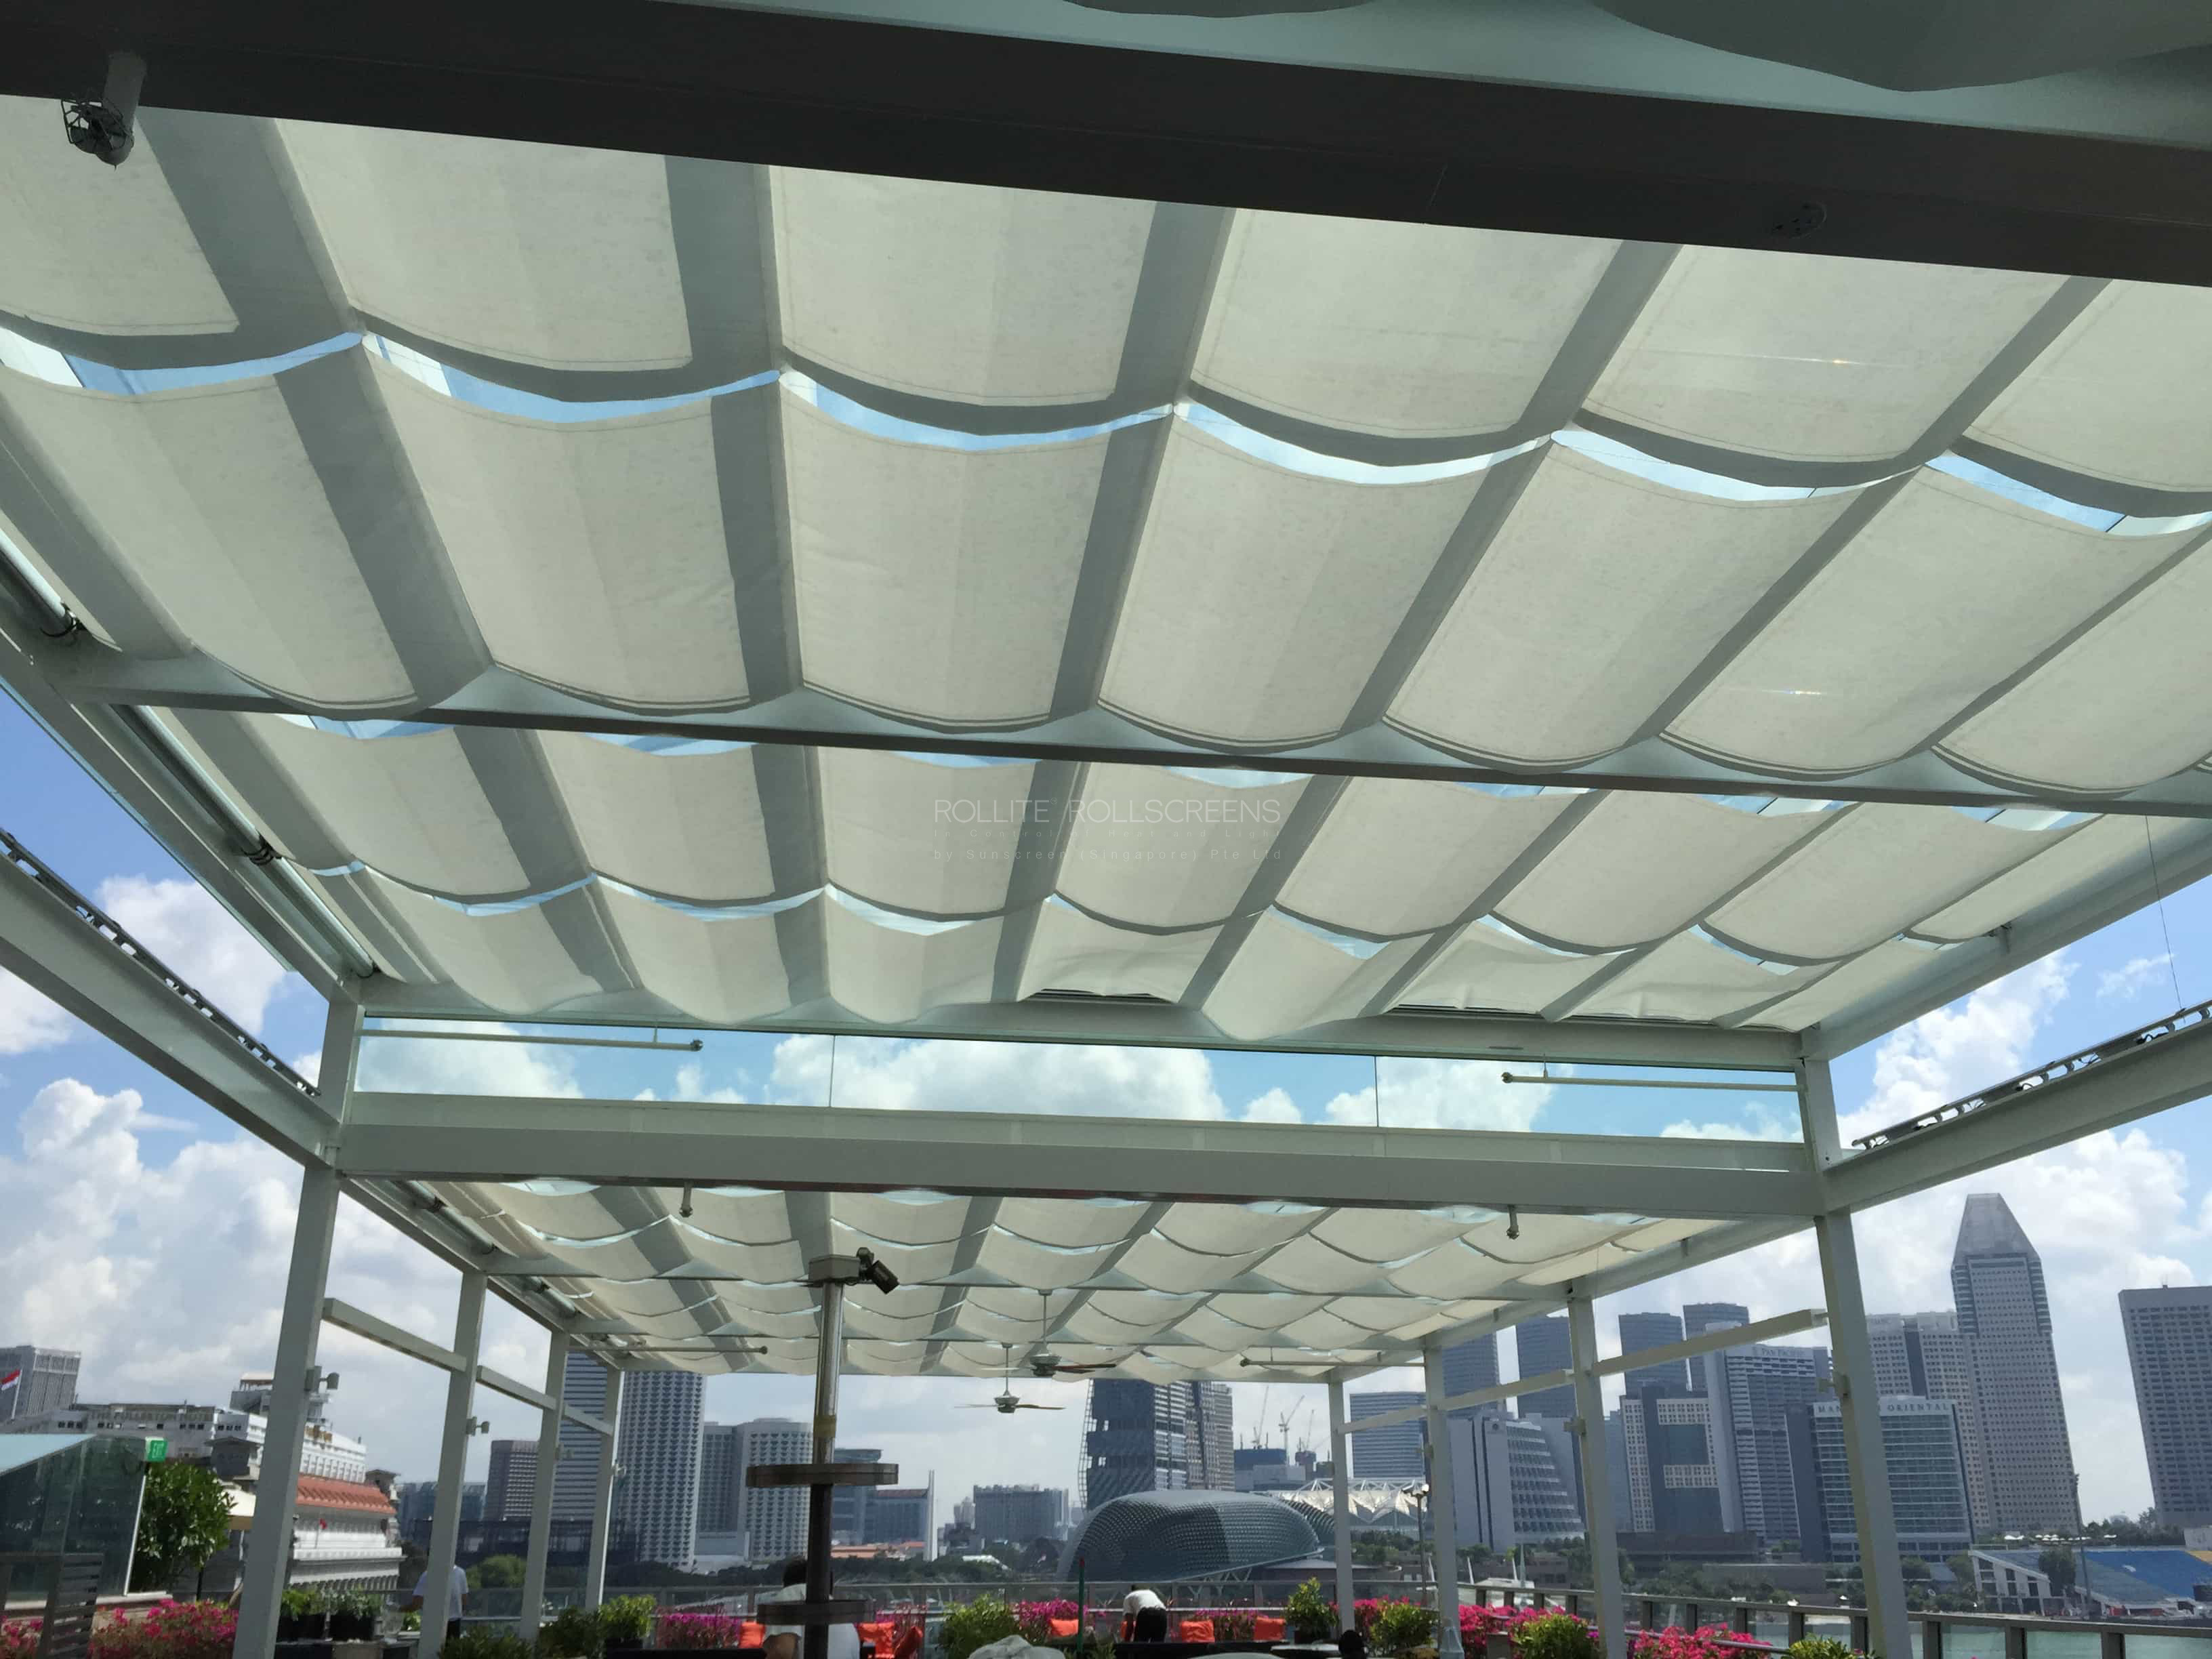 Sunscreen Singapore_Rollite External Scallop Skylight 1